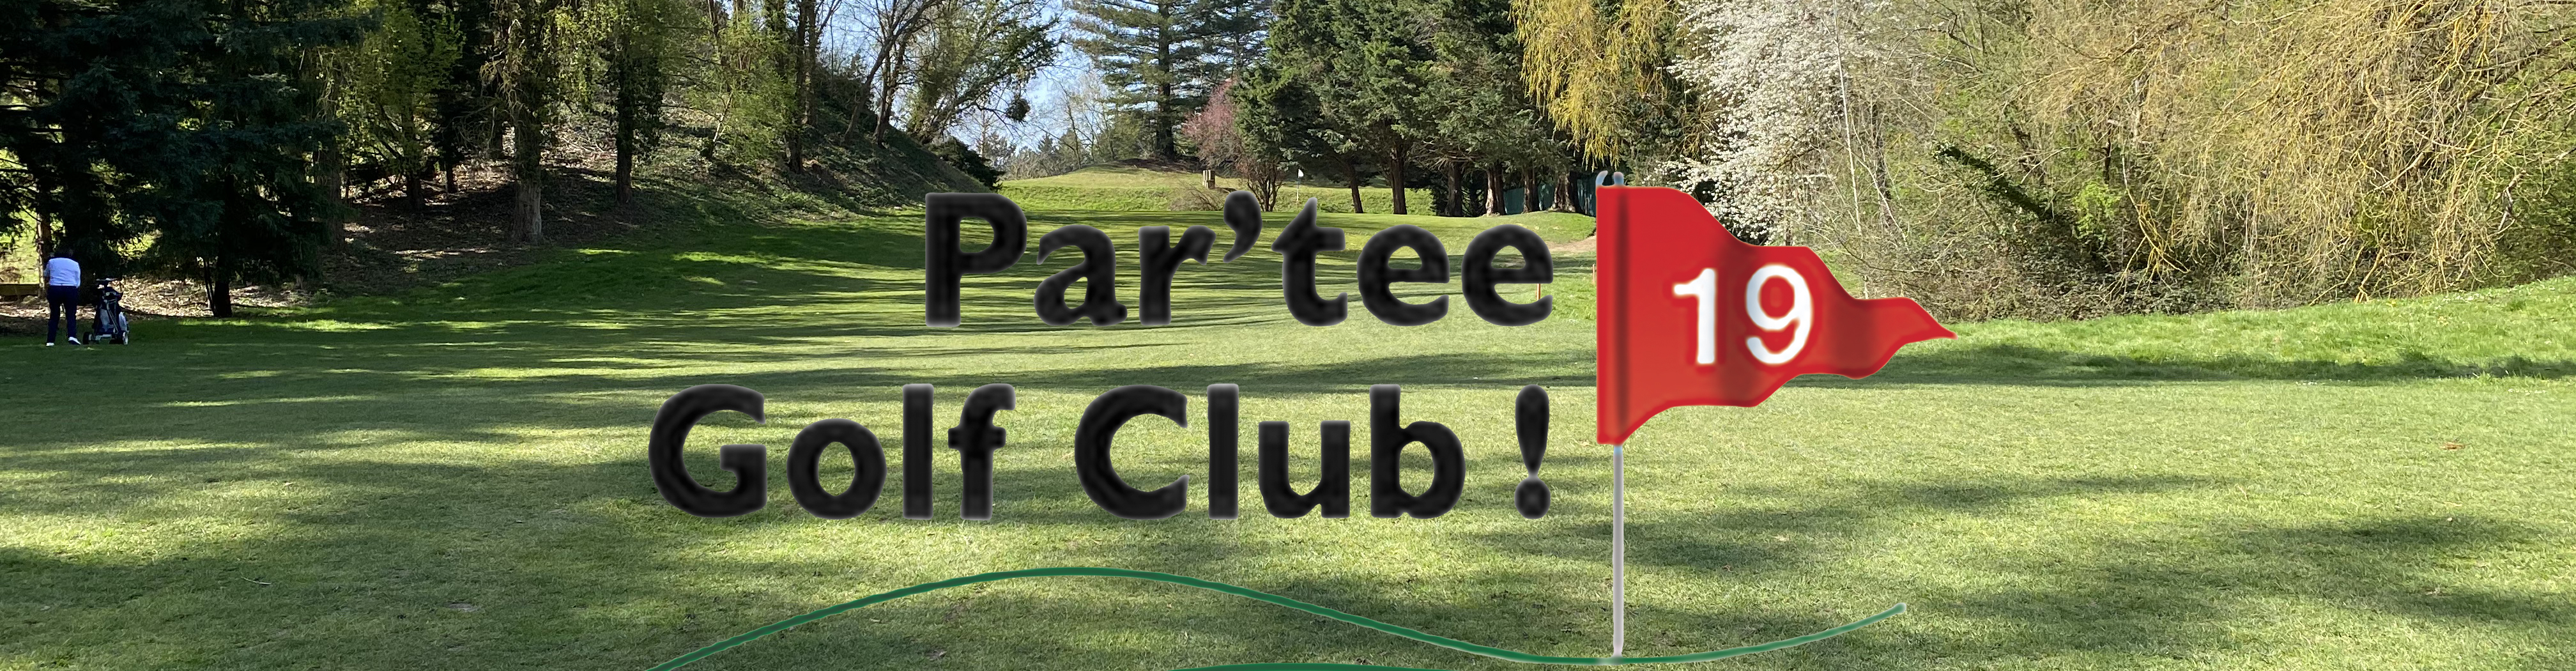 L'association golfique Par'tee Golf Club